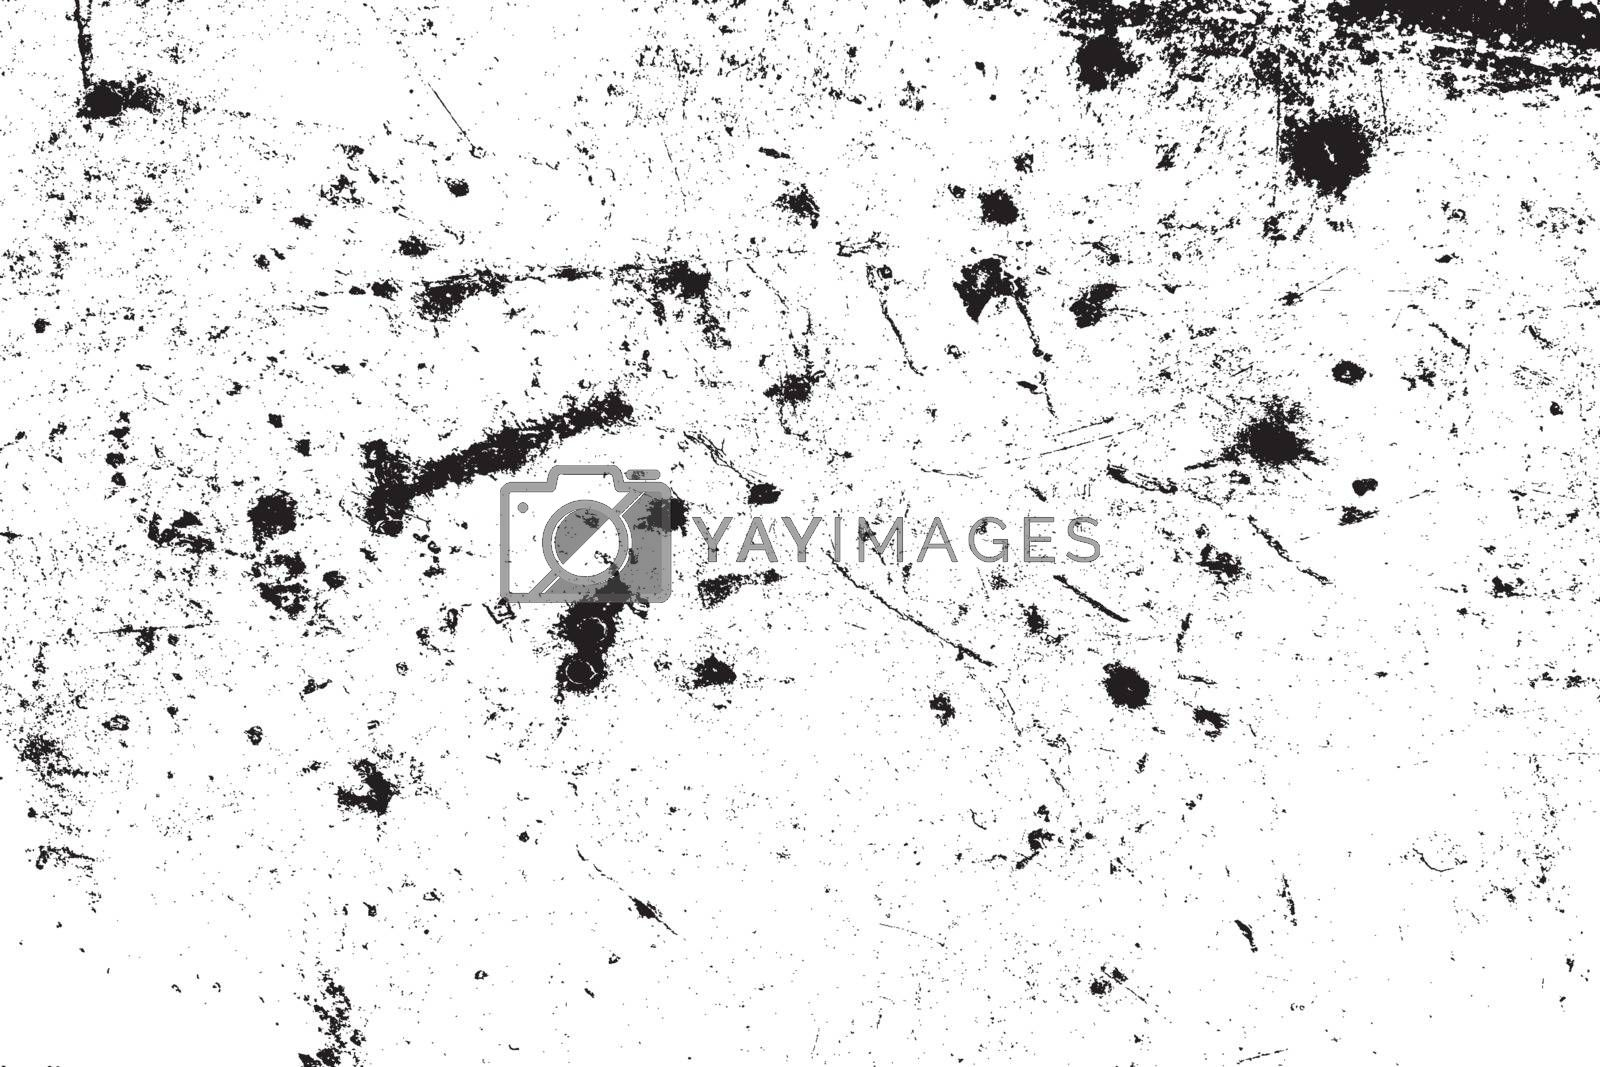 Distress urban used texture. Overlay aged grainy messy template. Grunge rough dirty background. Brushed black paint cover. Renovate wall scratched backdrop. Empty aging design element. EPS10 vector.